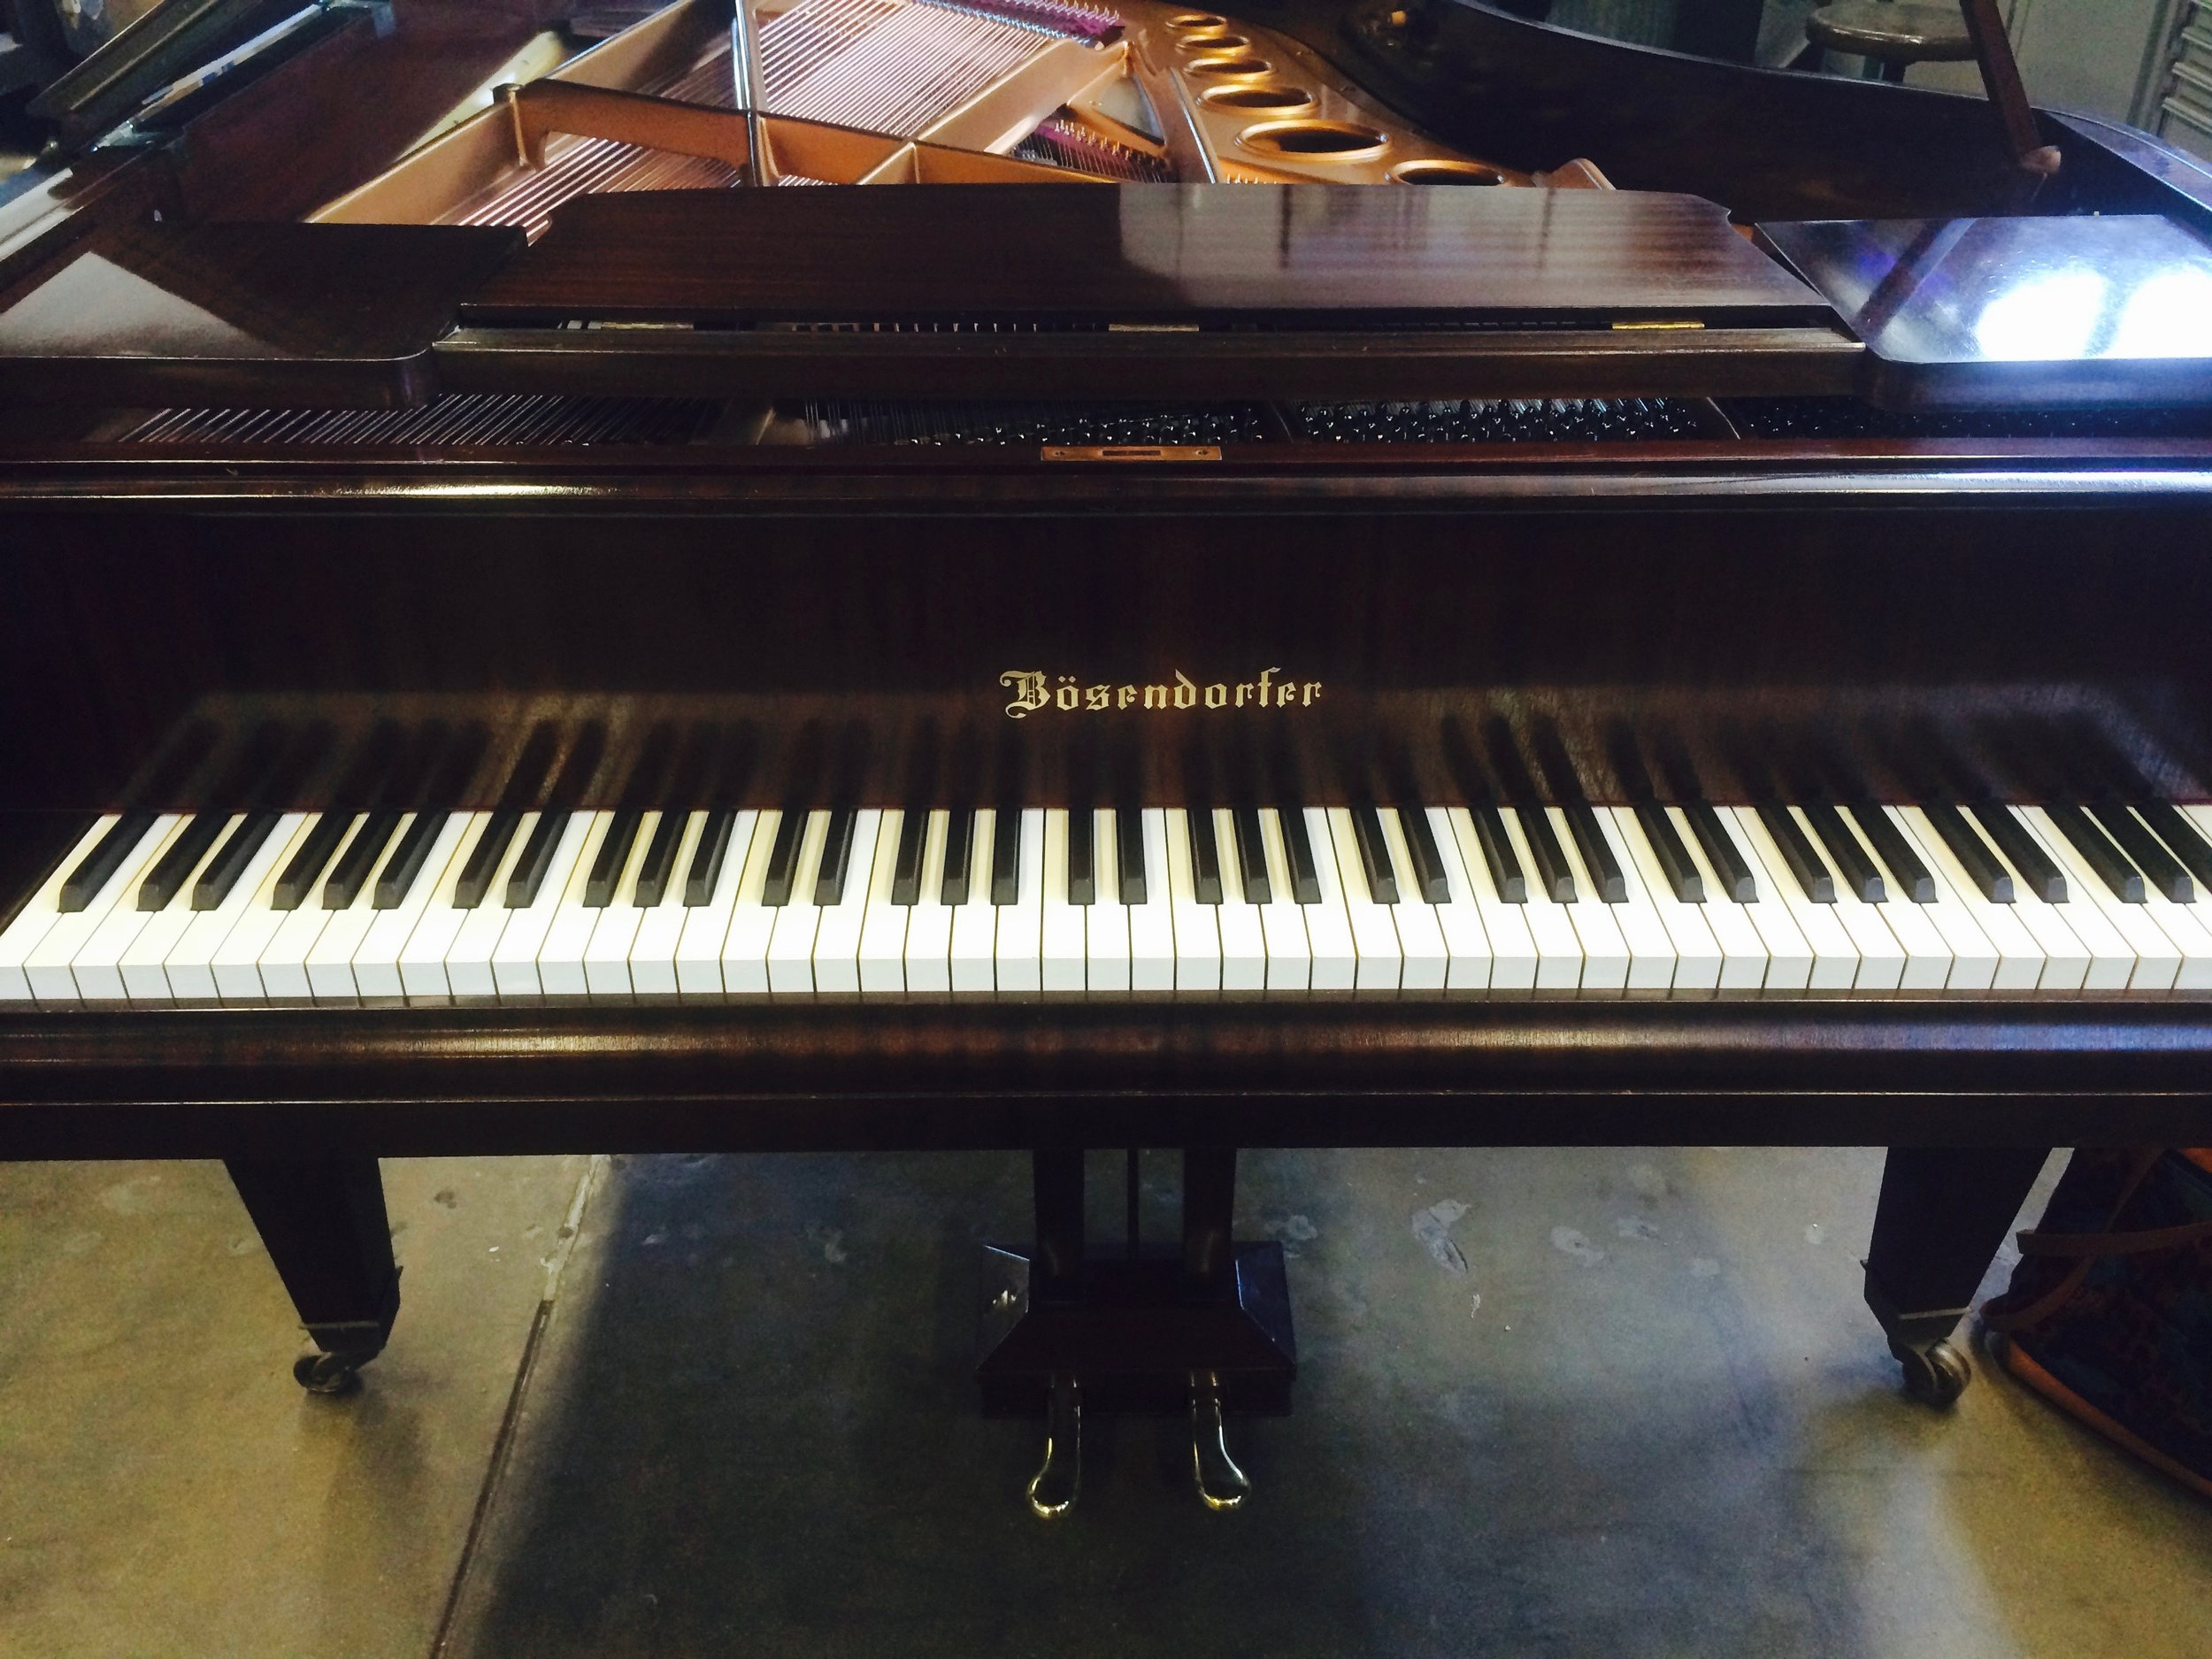 Bösendorfer Model 200, 1955; restored 2016 by Franco Skilan at Precision Piano, North Hollywood